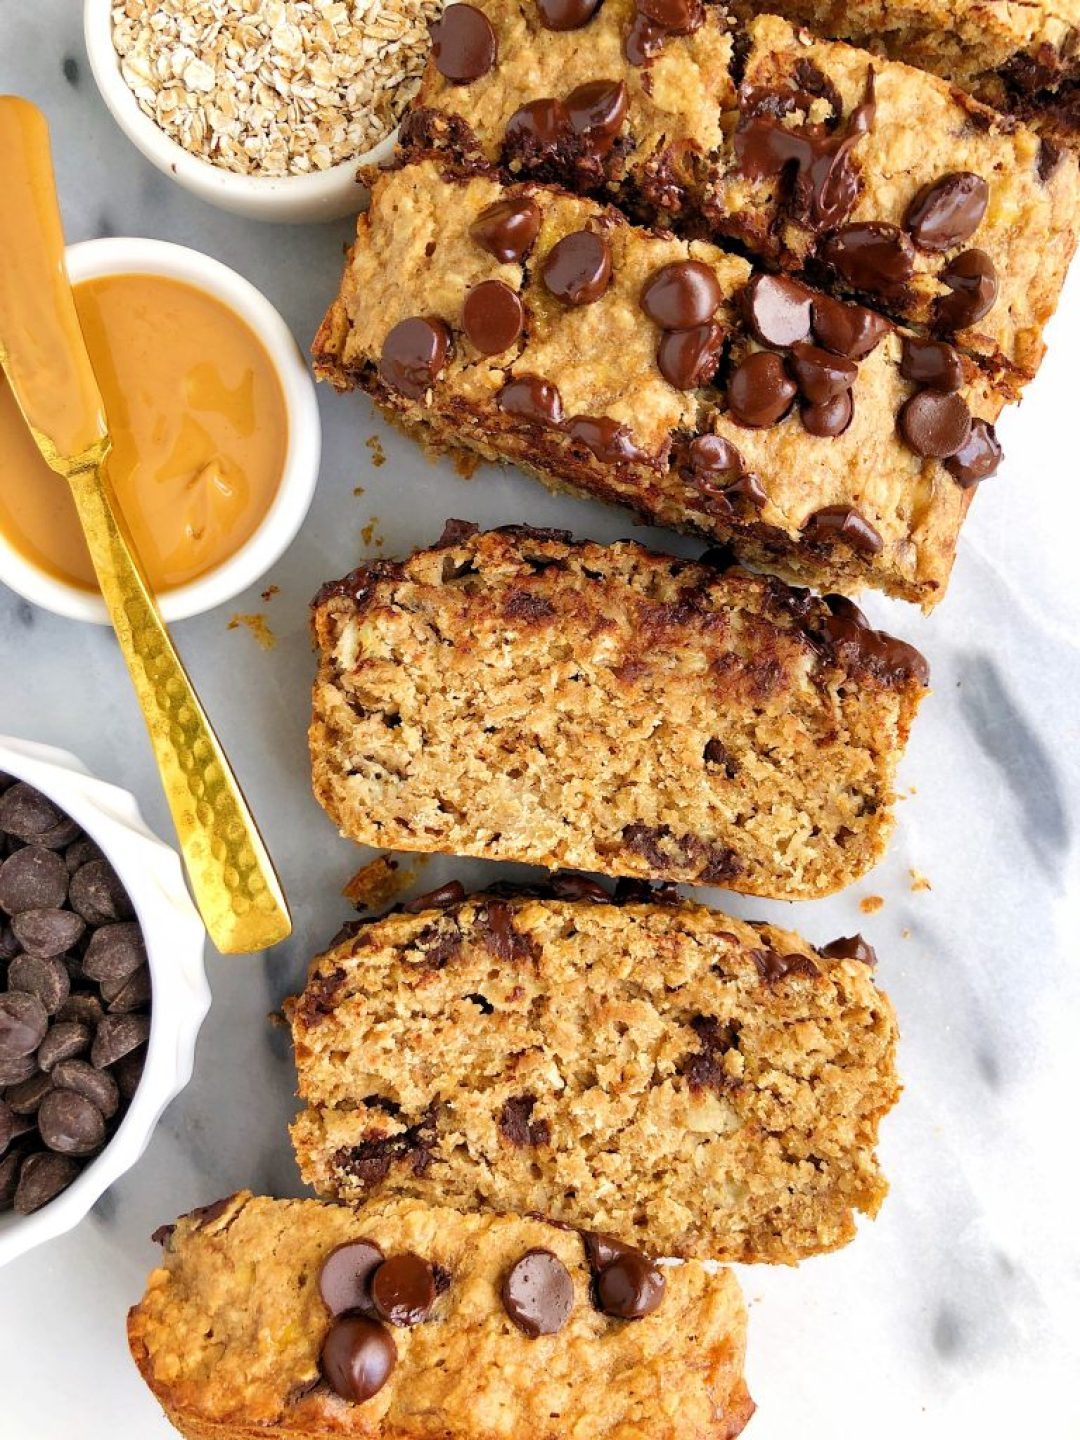 Gluten-free Lactation Chocolate Chip Banana Bread made with wholesome and healthy ingredients for all mama's milk supply!